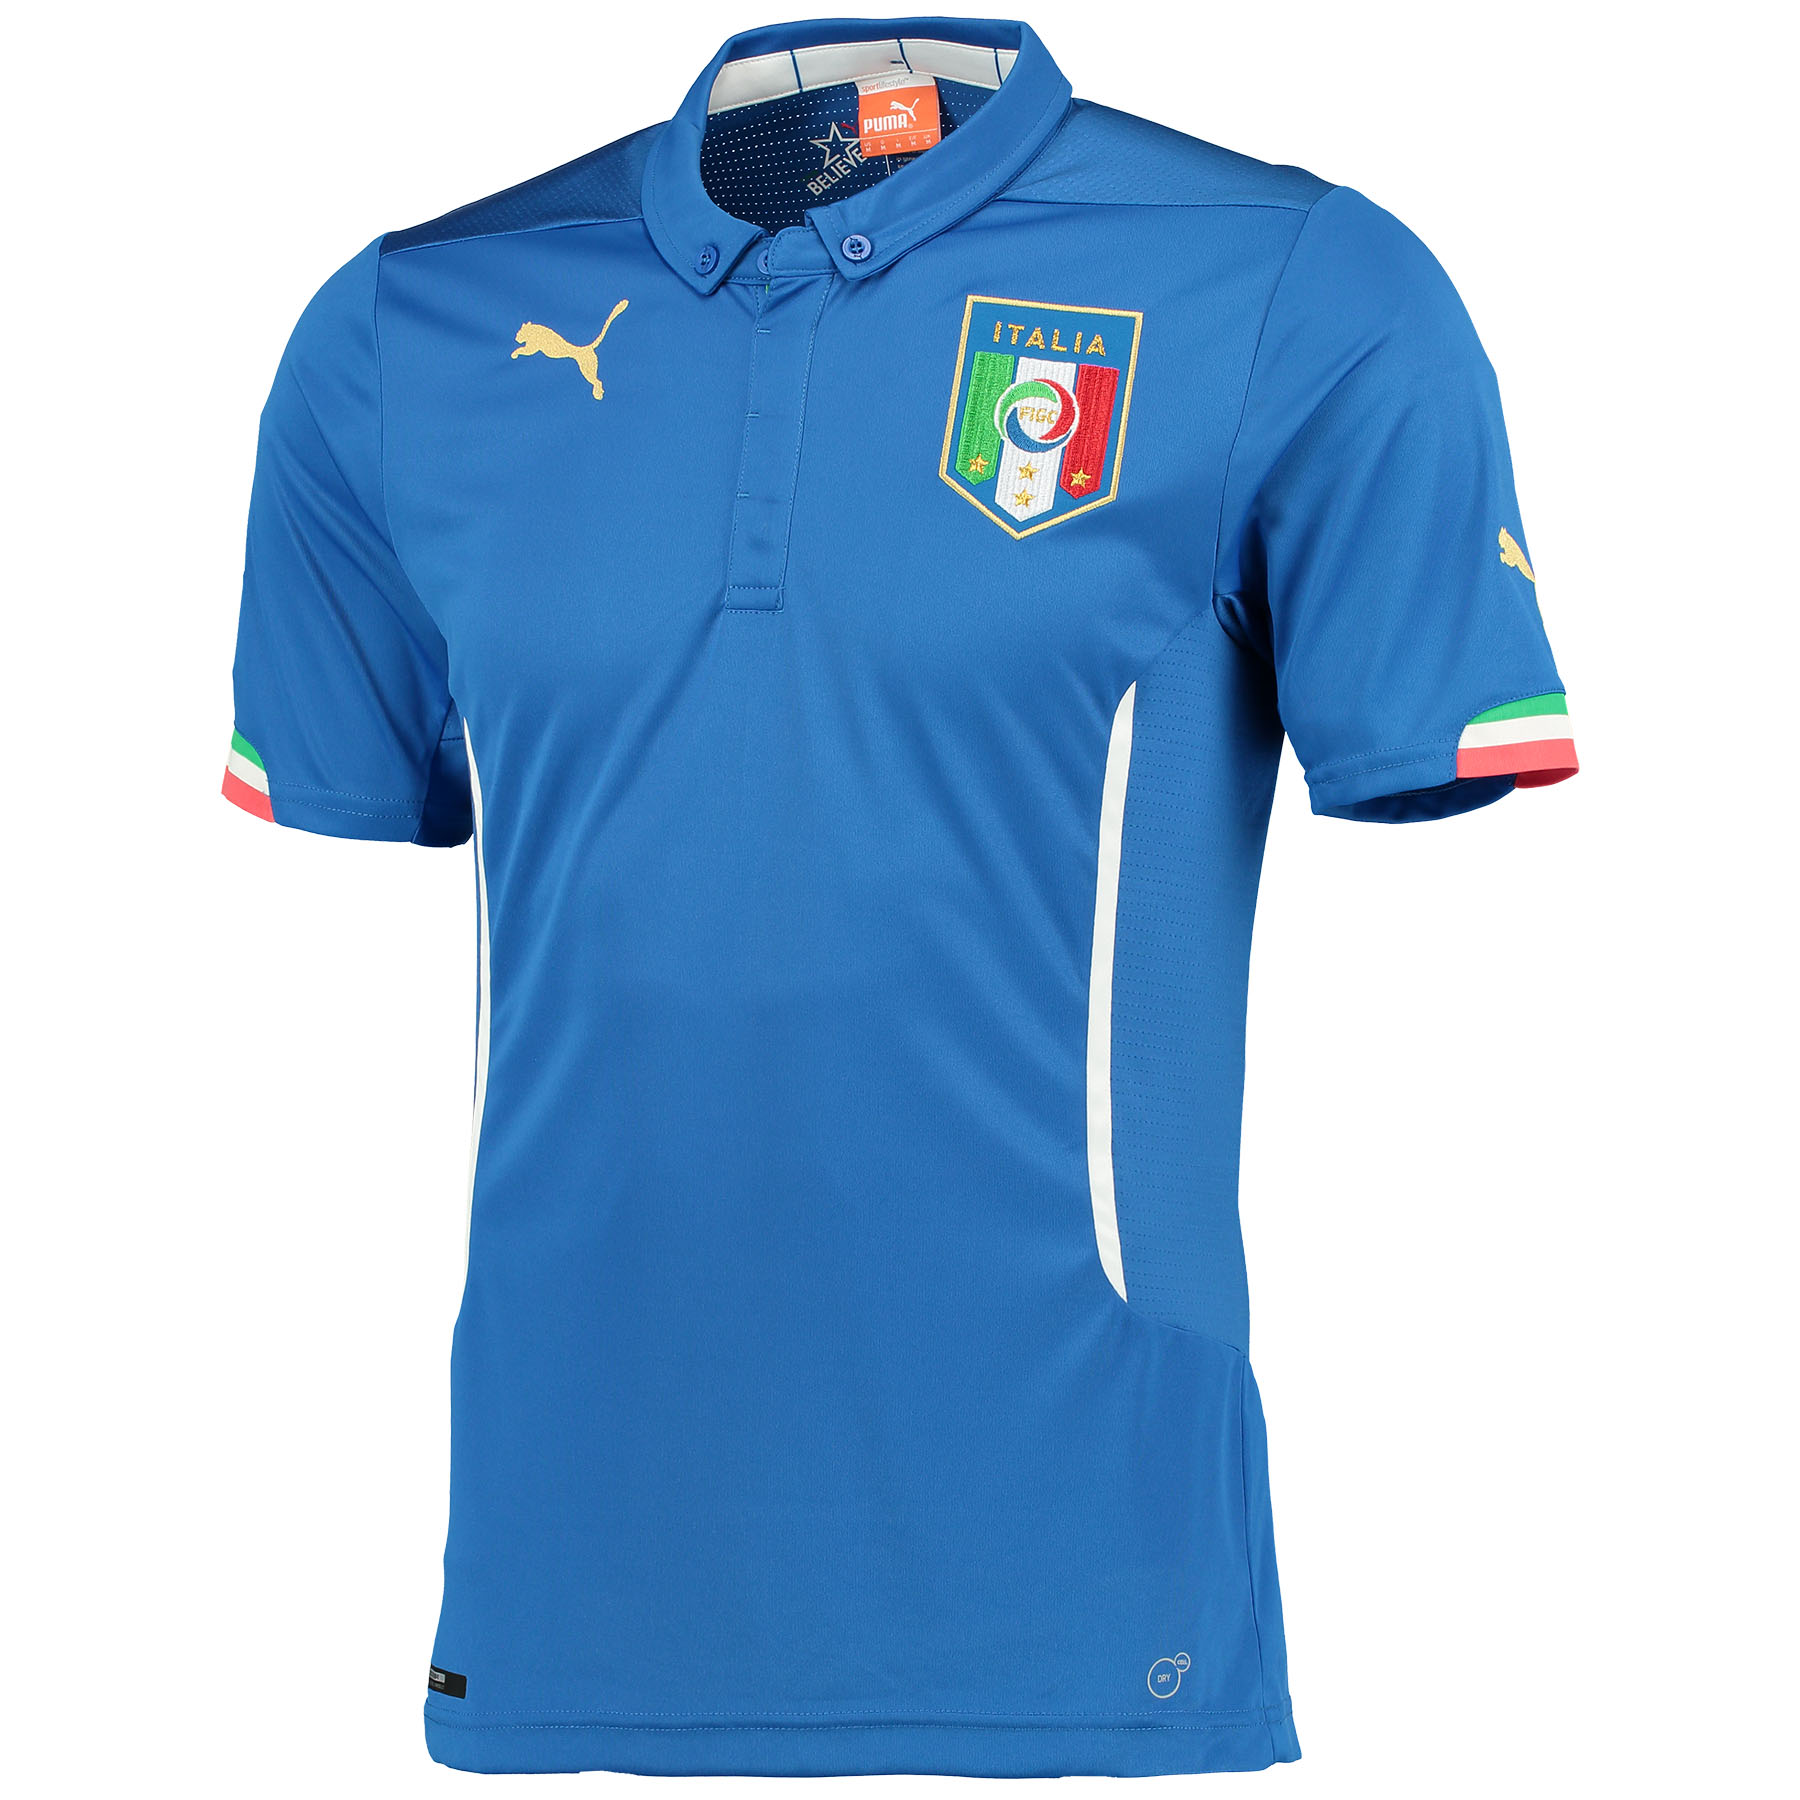 Italy Home Shirt 2013/14 with Baggio 10 printing